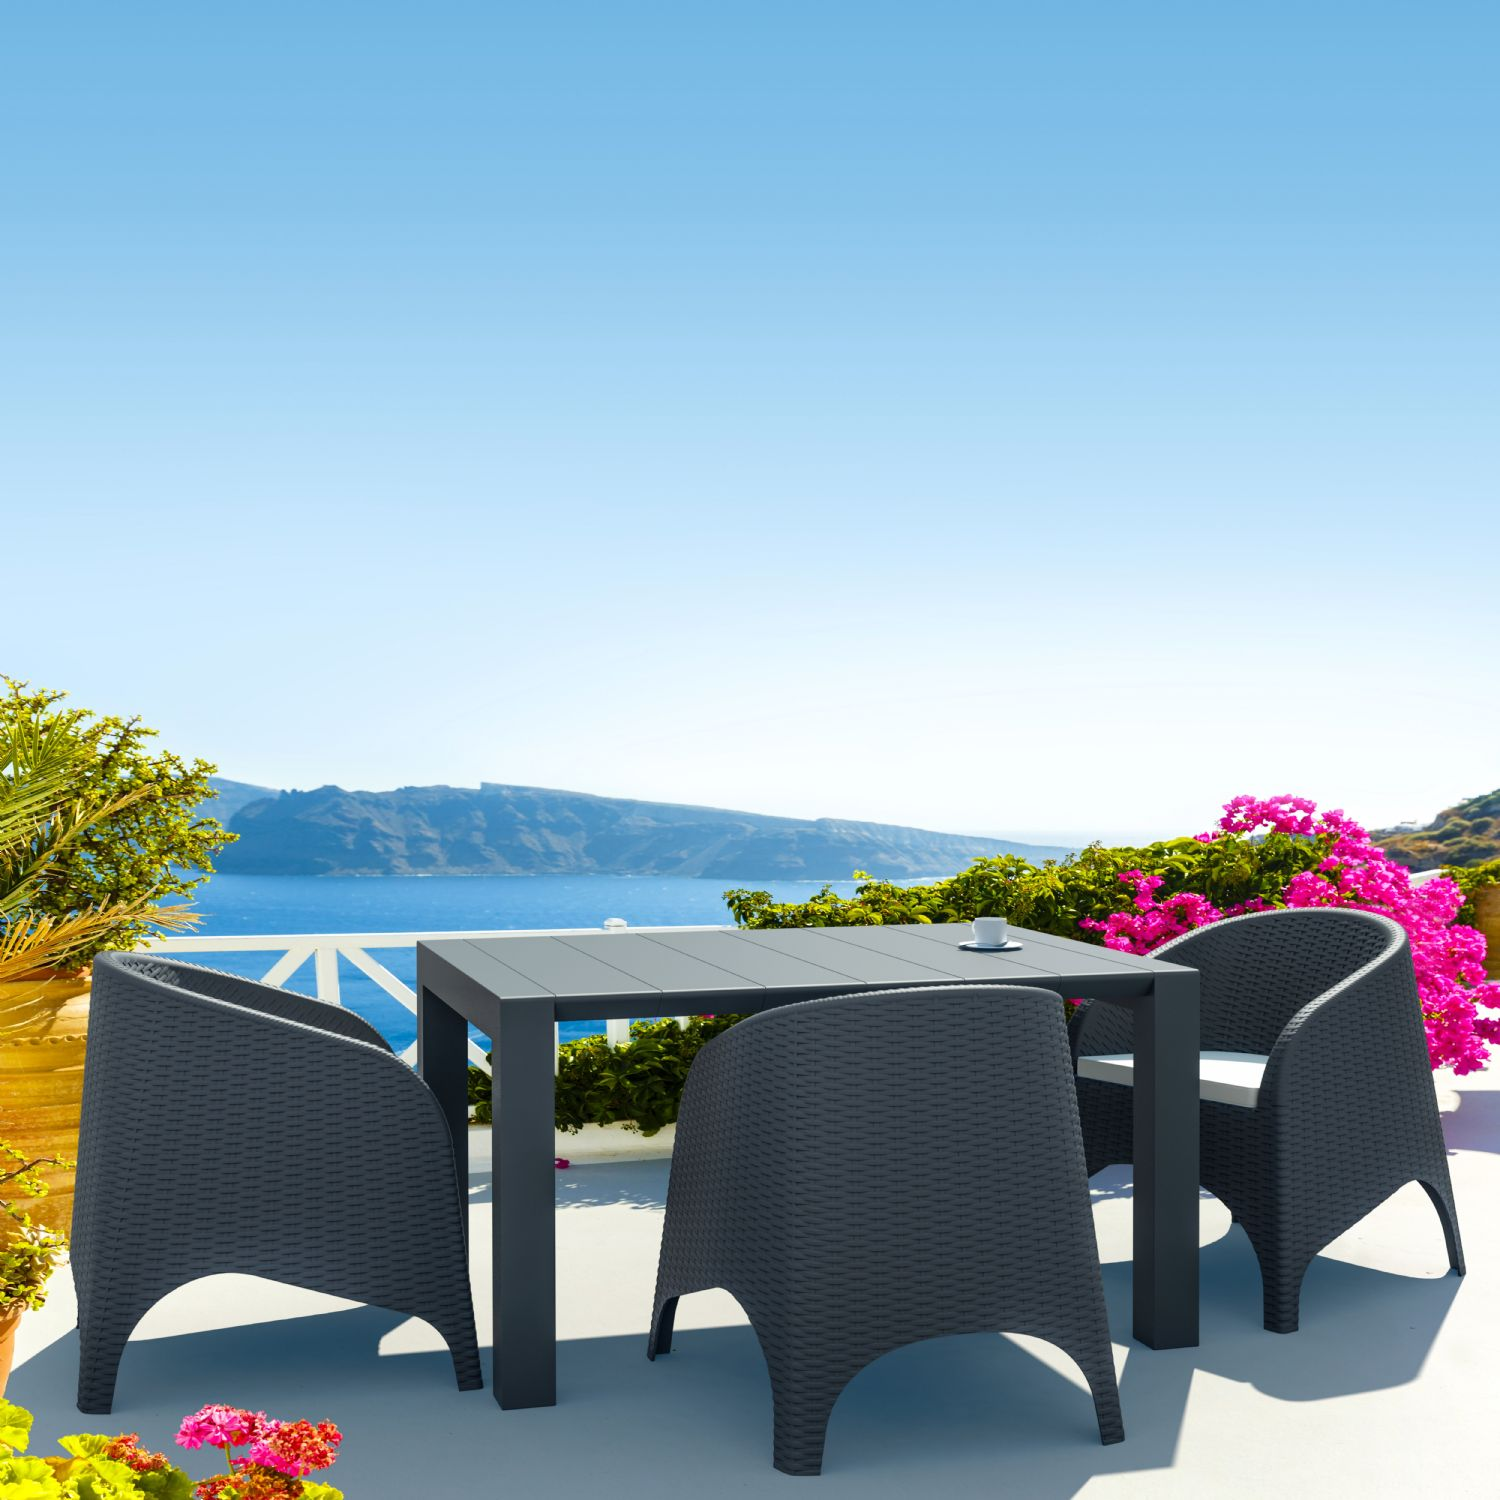 Vegas Outdoor Dining Table Extendable from 39 to 55 inch White ISP772-WH - 9